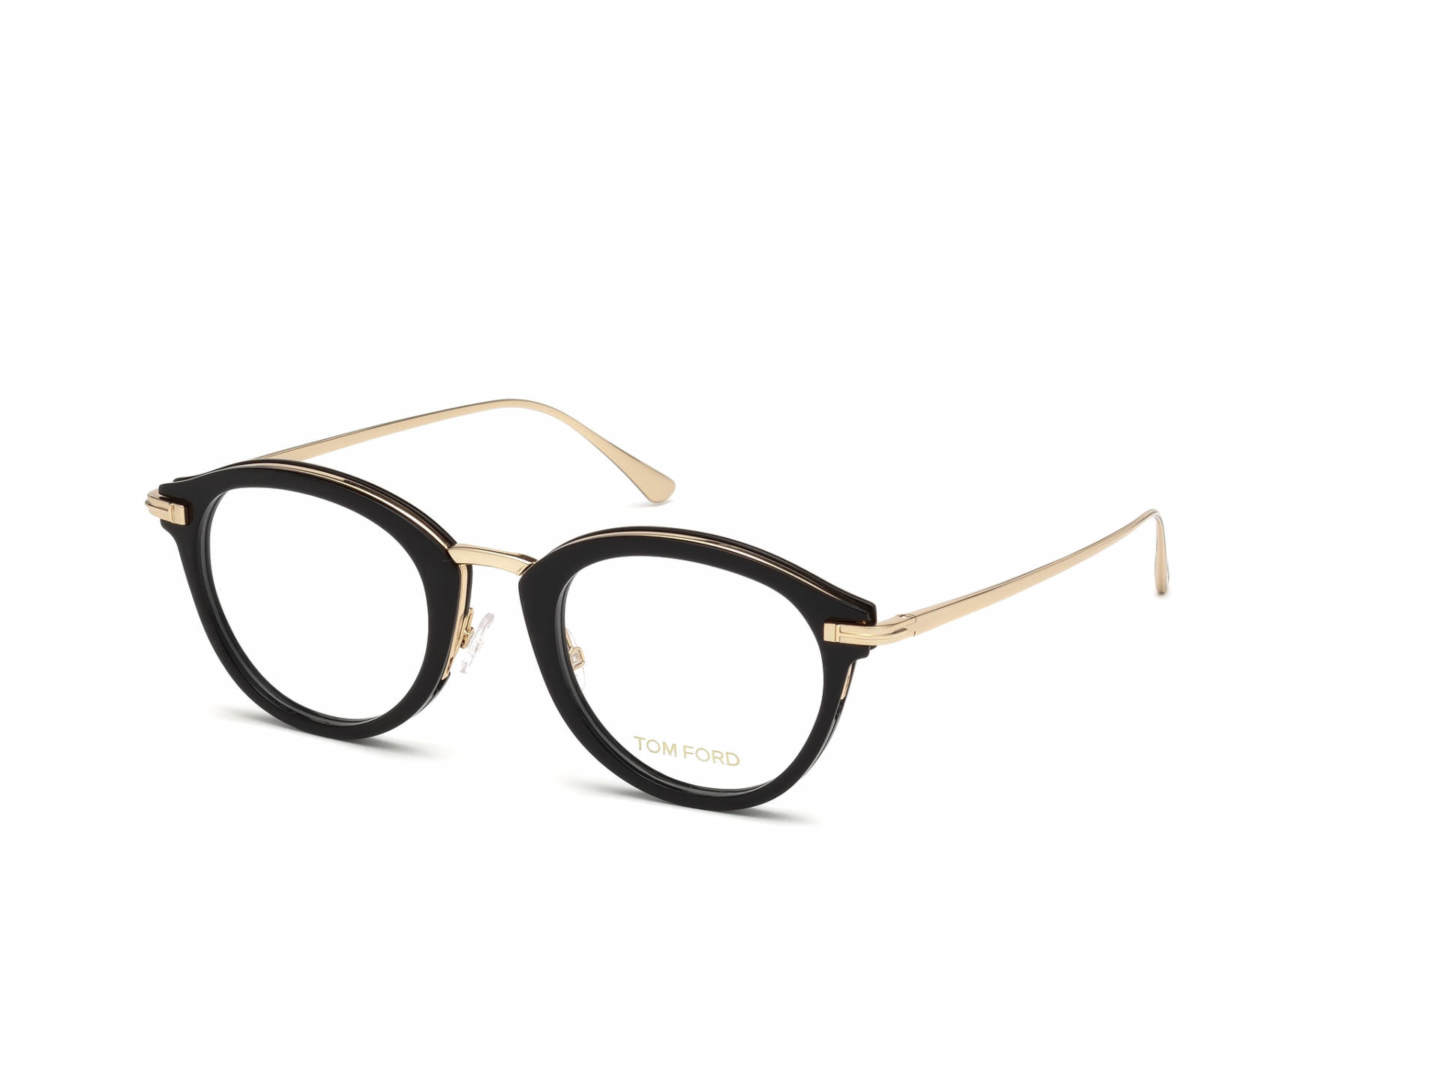 Occhiali da Vista Tom Ford FT5497 001 oYJivSjV